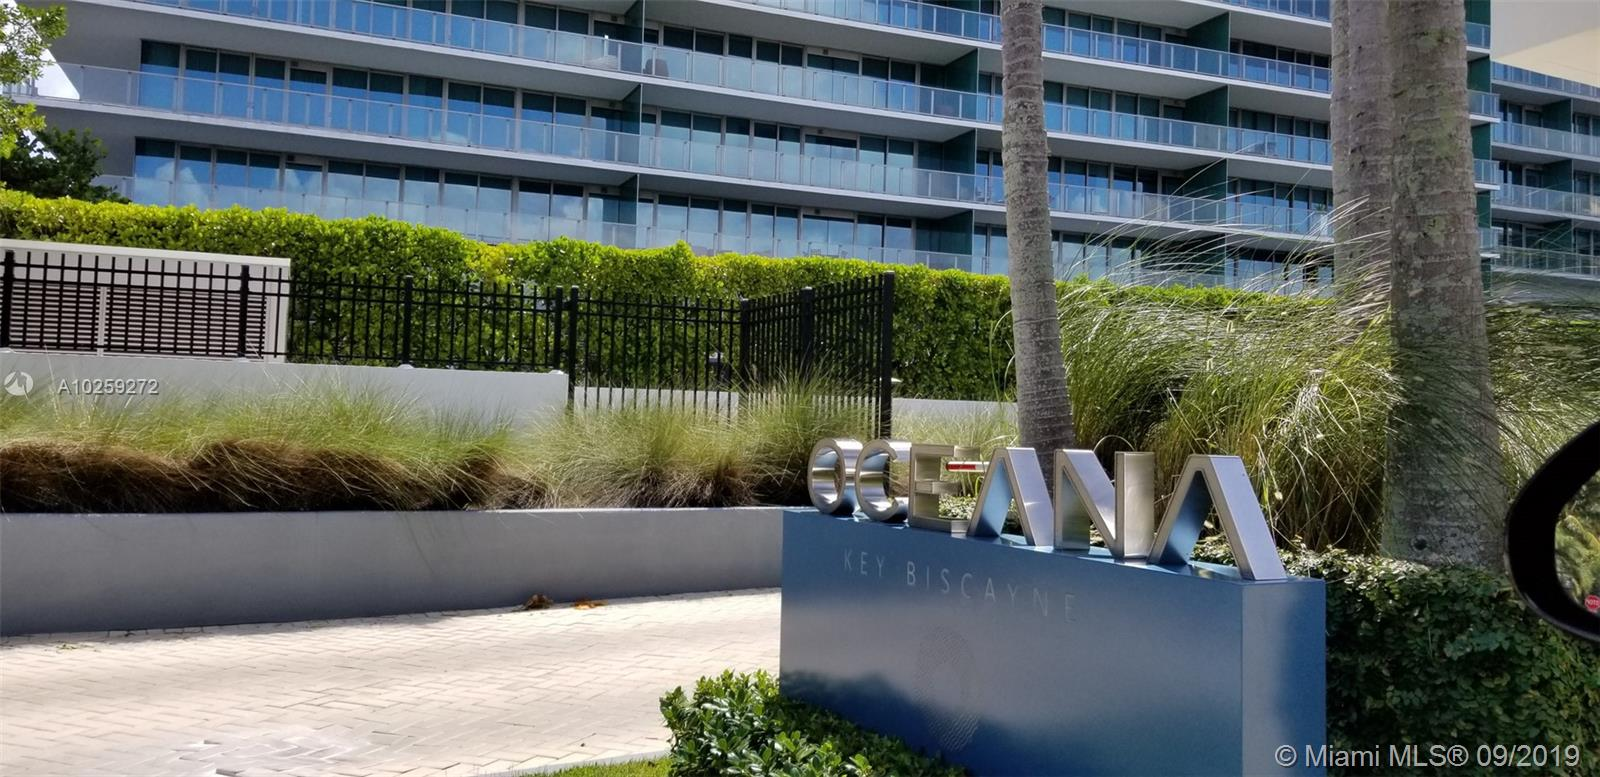 Best North Corner Unit In The Oceana Key Biscayne In A Prestigious Building In So. Fl., Great Open Views To Atl. Ocean, Mia. Bch, Fisher Isl., Key Biscayne. This Wonderful Property W/ 4, 080 Lasqr Has 4 Beds, A Service Room, 7 Baths, Large Laundry Room An D A Huge Wrap Around Balcony With 2, 070 Sqf. 4 Parking Spaces. White Quartz Counter Tops, Master Chef Double Oven, Hole Bean Coffee System, Wine Cooler. Unique Residence Lobby, Infinity Pool, Fitness Center And Top Of The Spa. Tennis, Volleyball & More.Seller Motivated Make An Offer !!!